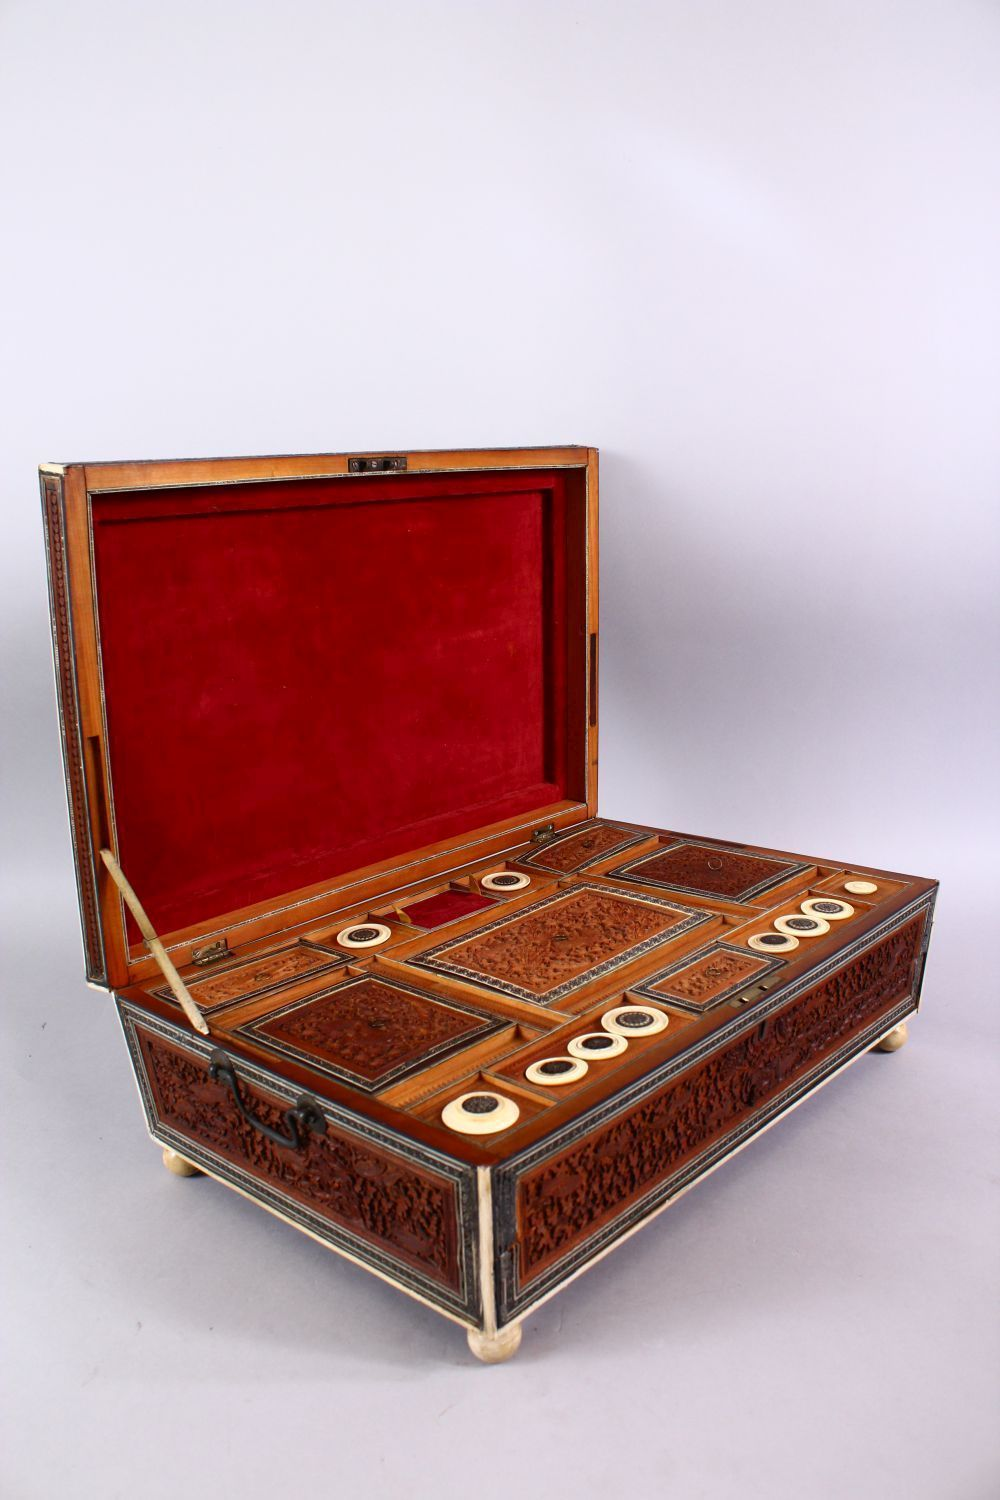 A 19TH CENTURY ANGLO INDIAN INLAID LIDDED SEWING BOX, with carved wood depicting figures and animals - Image 3 of 10